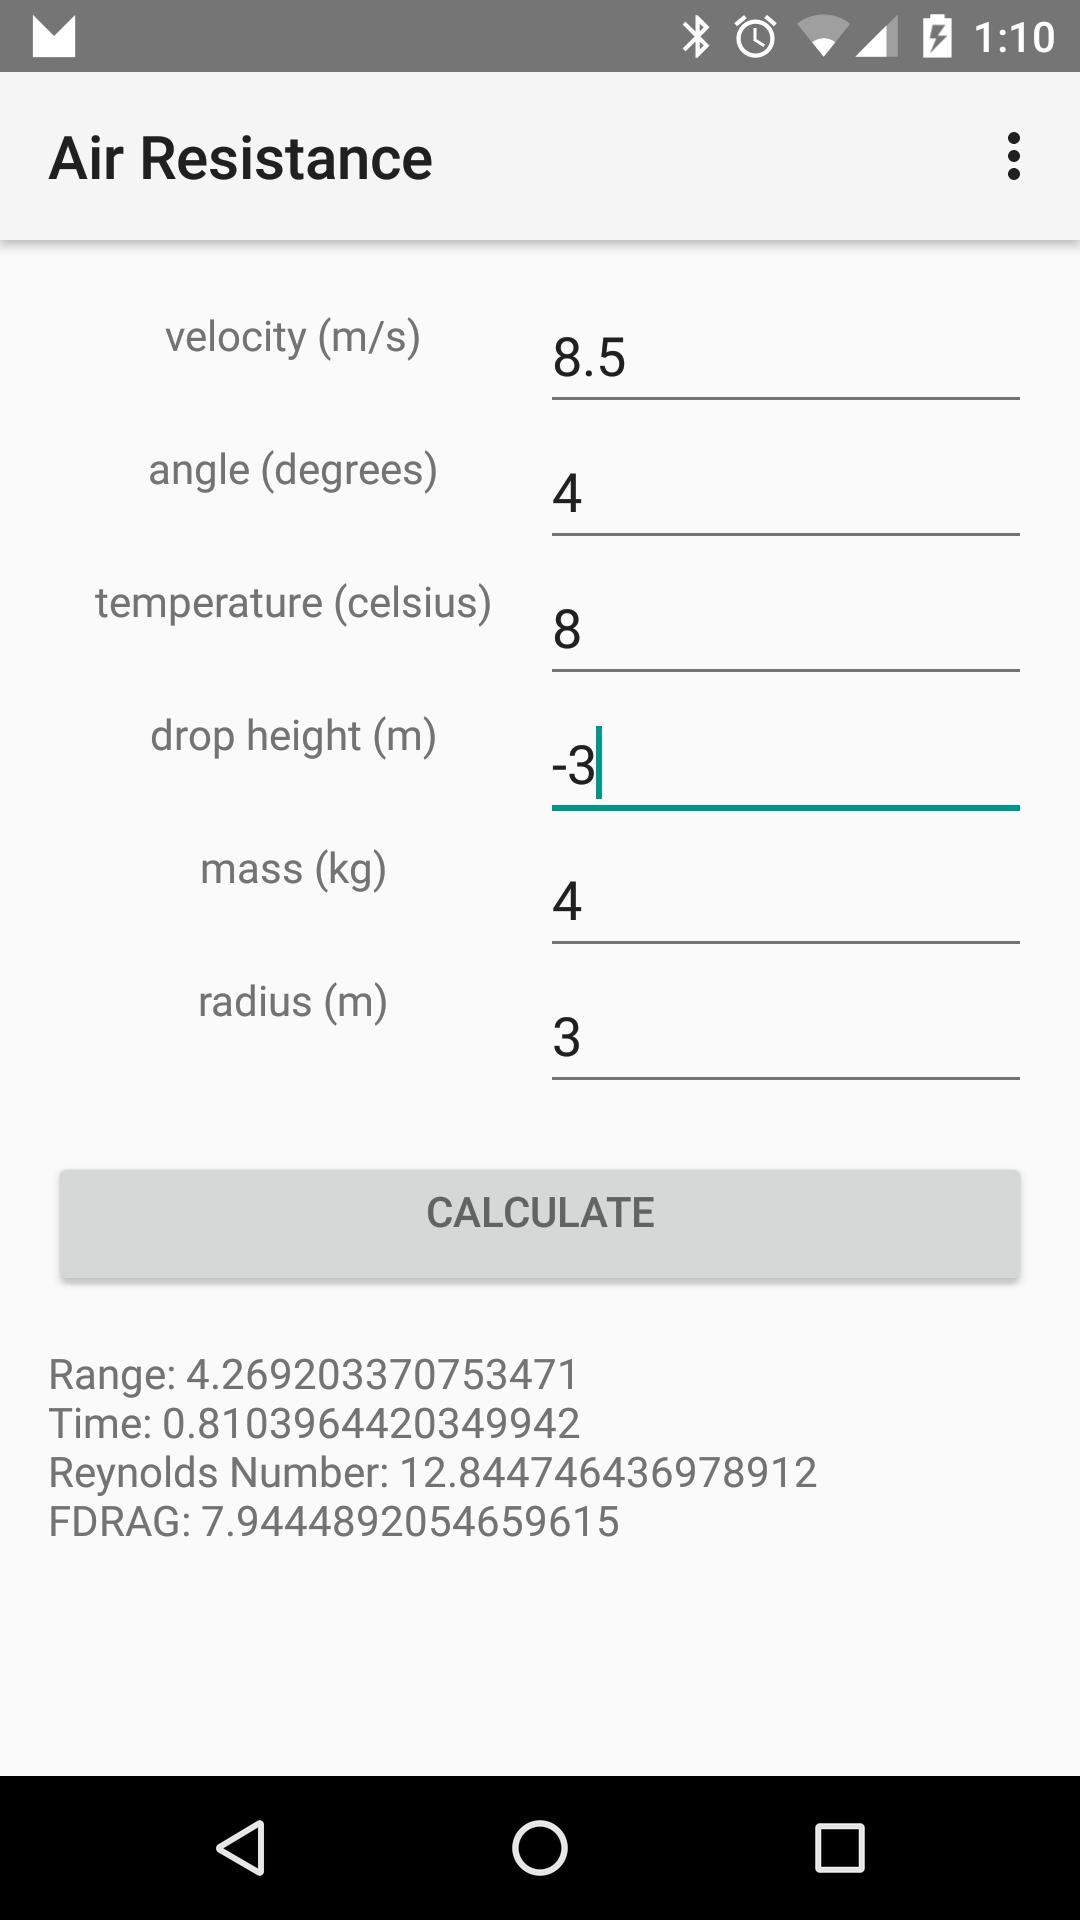 Air Resistance Calculator for Android - APK Download